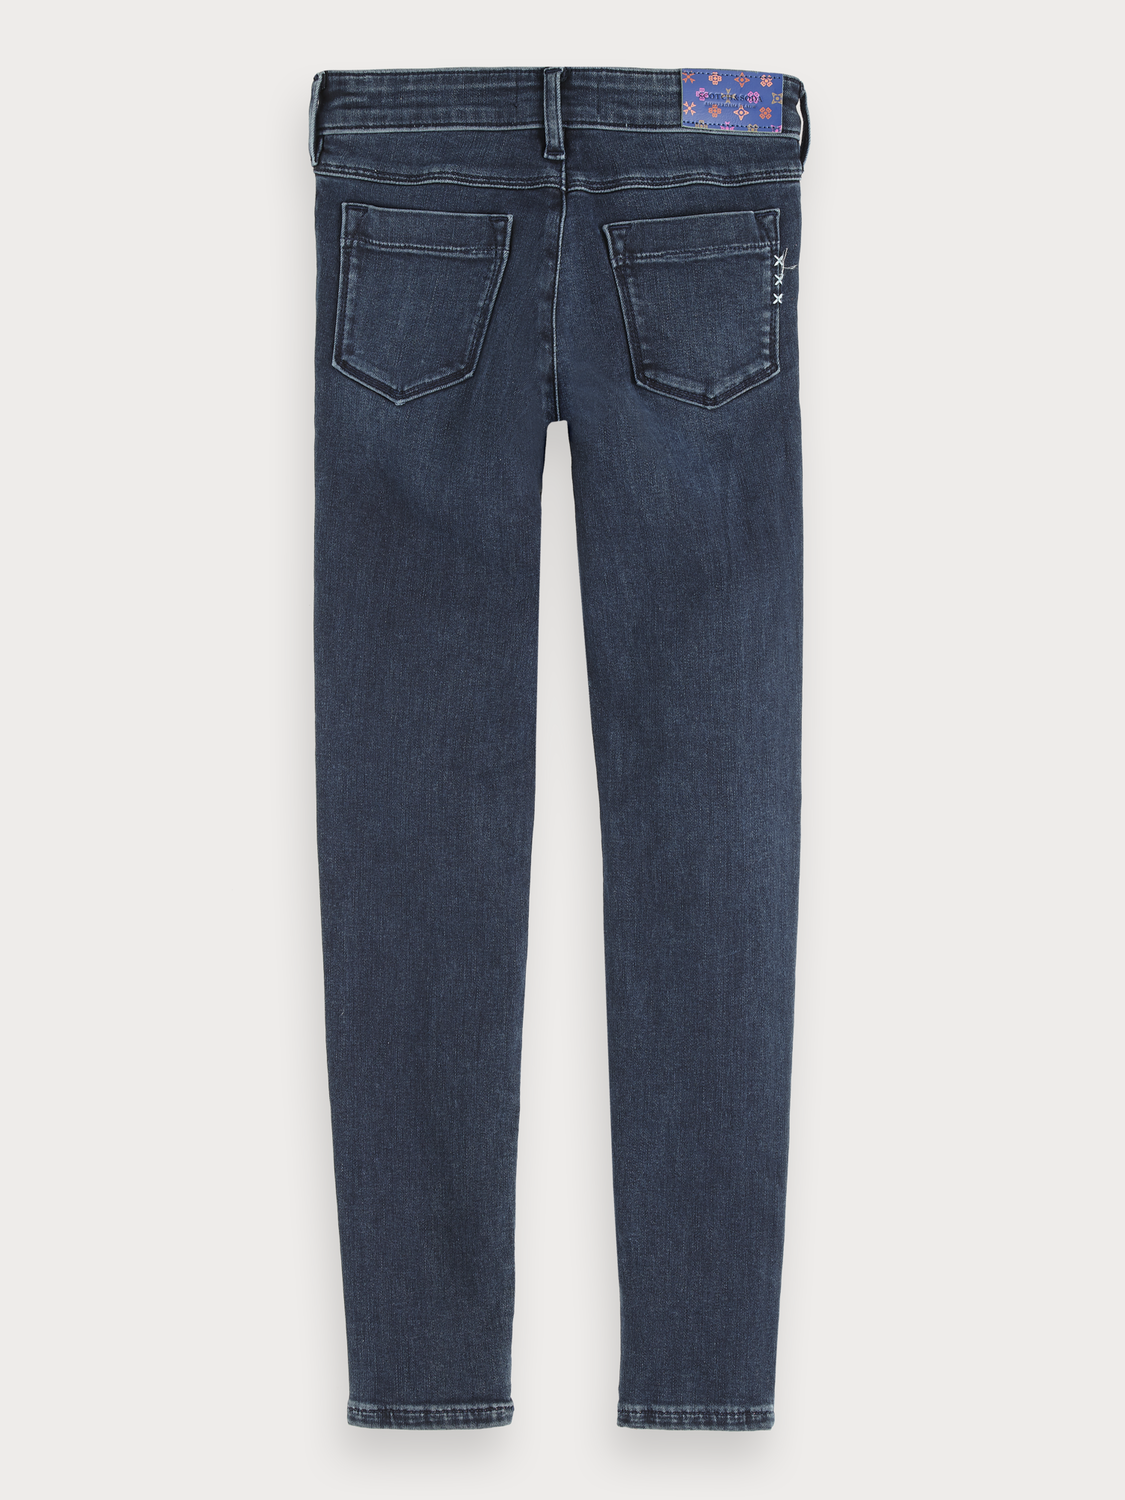 Girls La Milou - Midnight Sky Light | Mid rise skinny fit